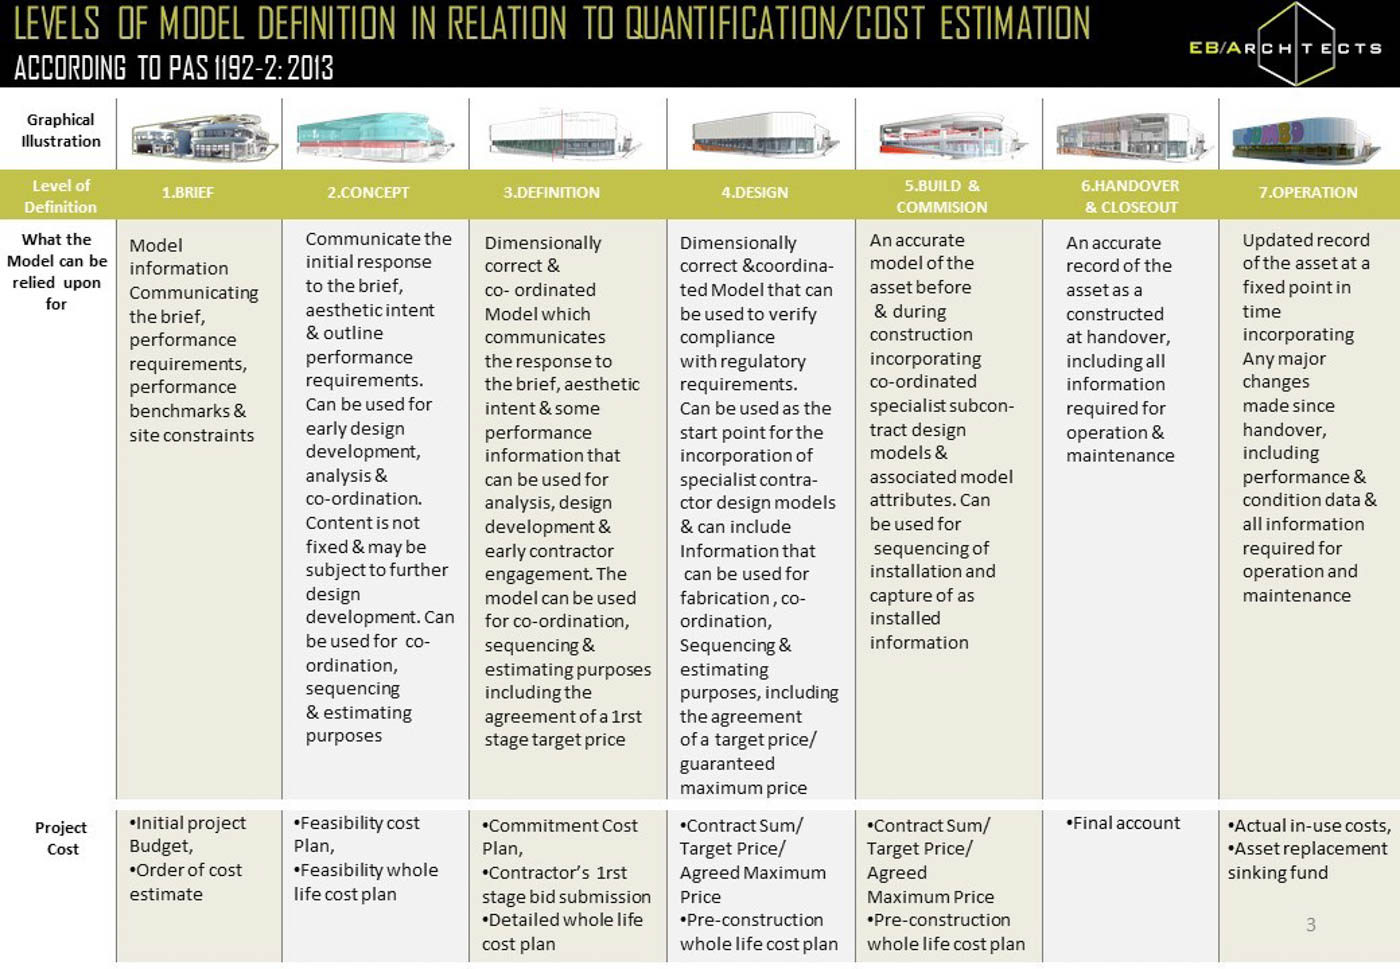 Levels of Model Definition in relation to Quantification / Cost Estimation